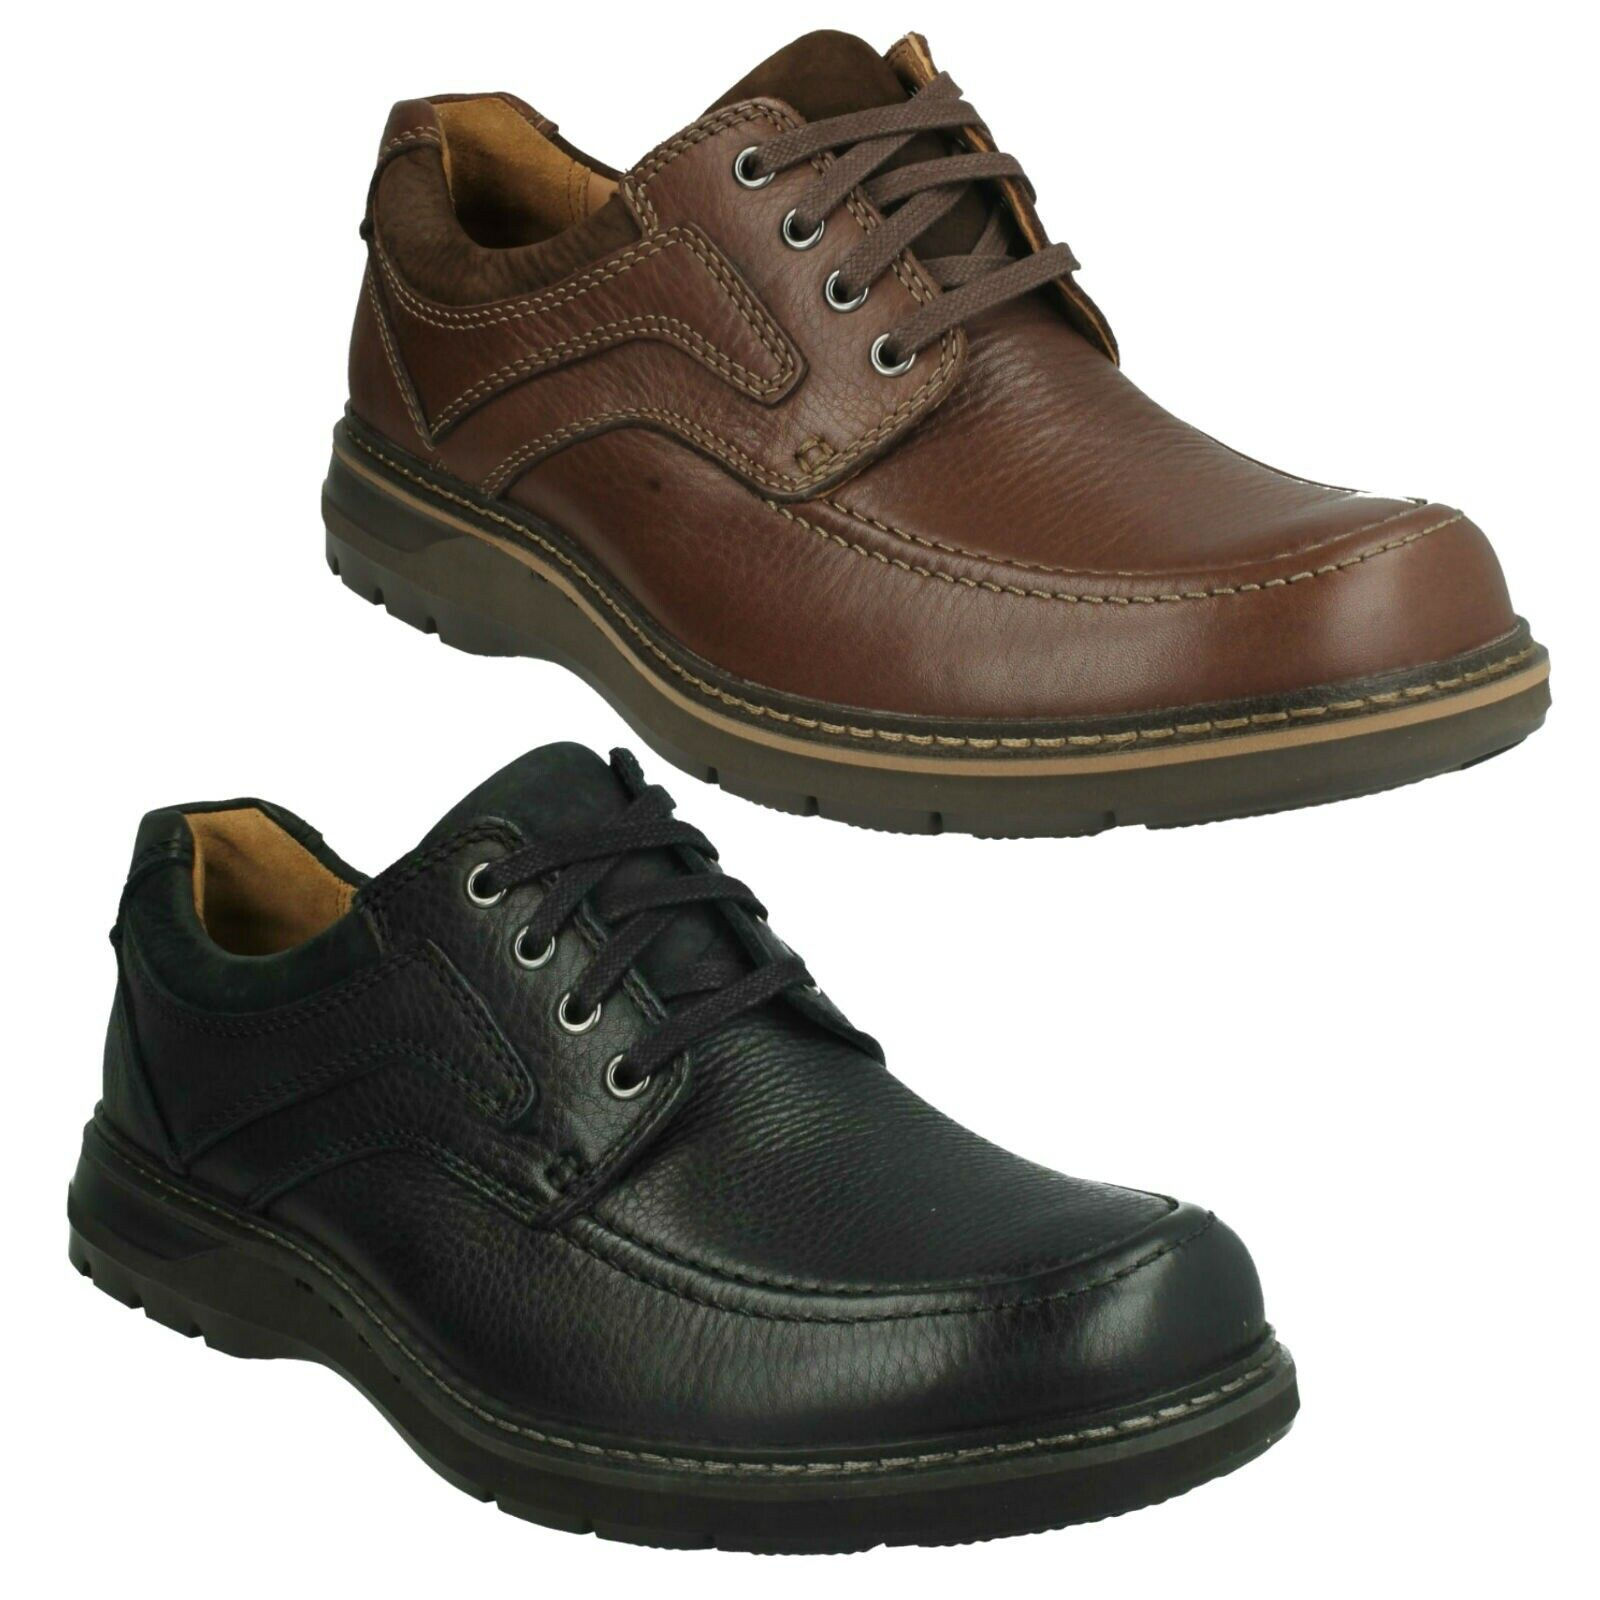 MENS CLARKS UNSTRUCTURED UN RAMBLE WIDE LACE UP SMART CASUAL LEATHER SHOES SIZE